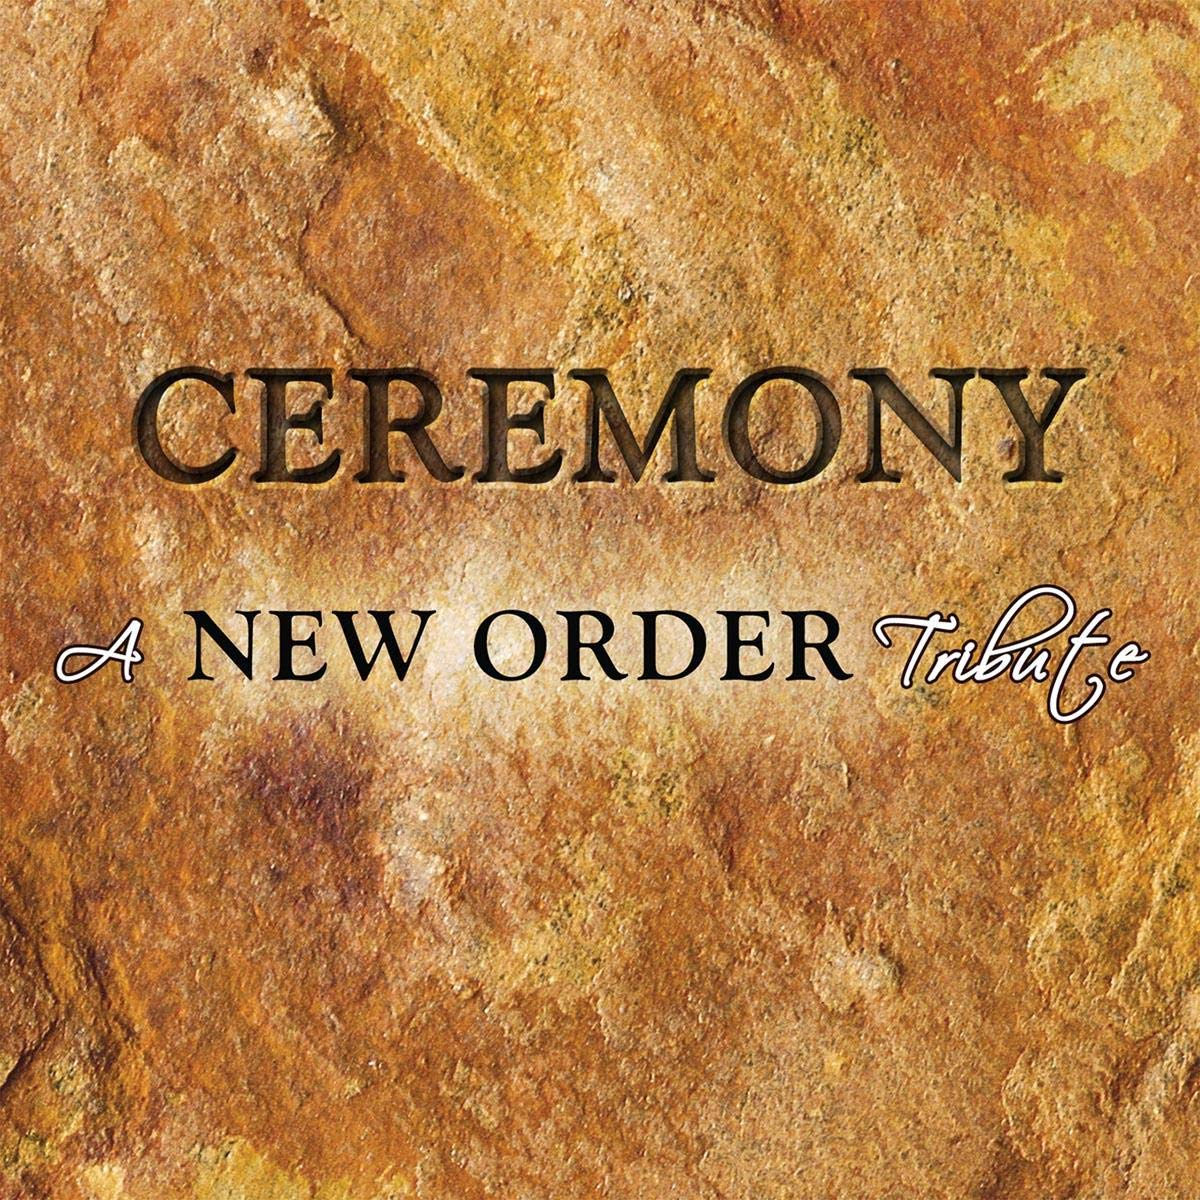 Ceremony: Luxury goods A New color New Tribute Order